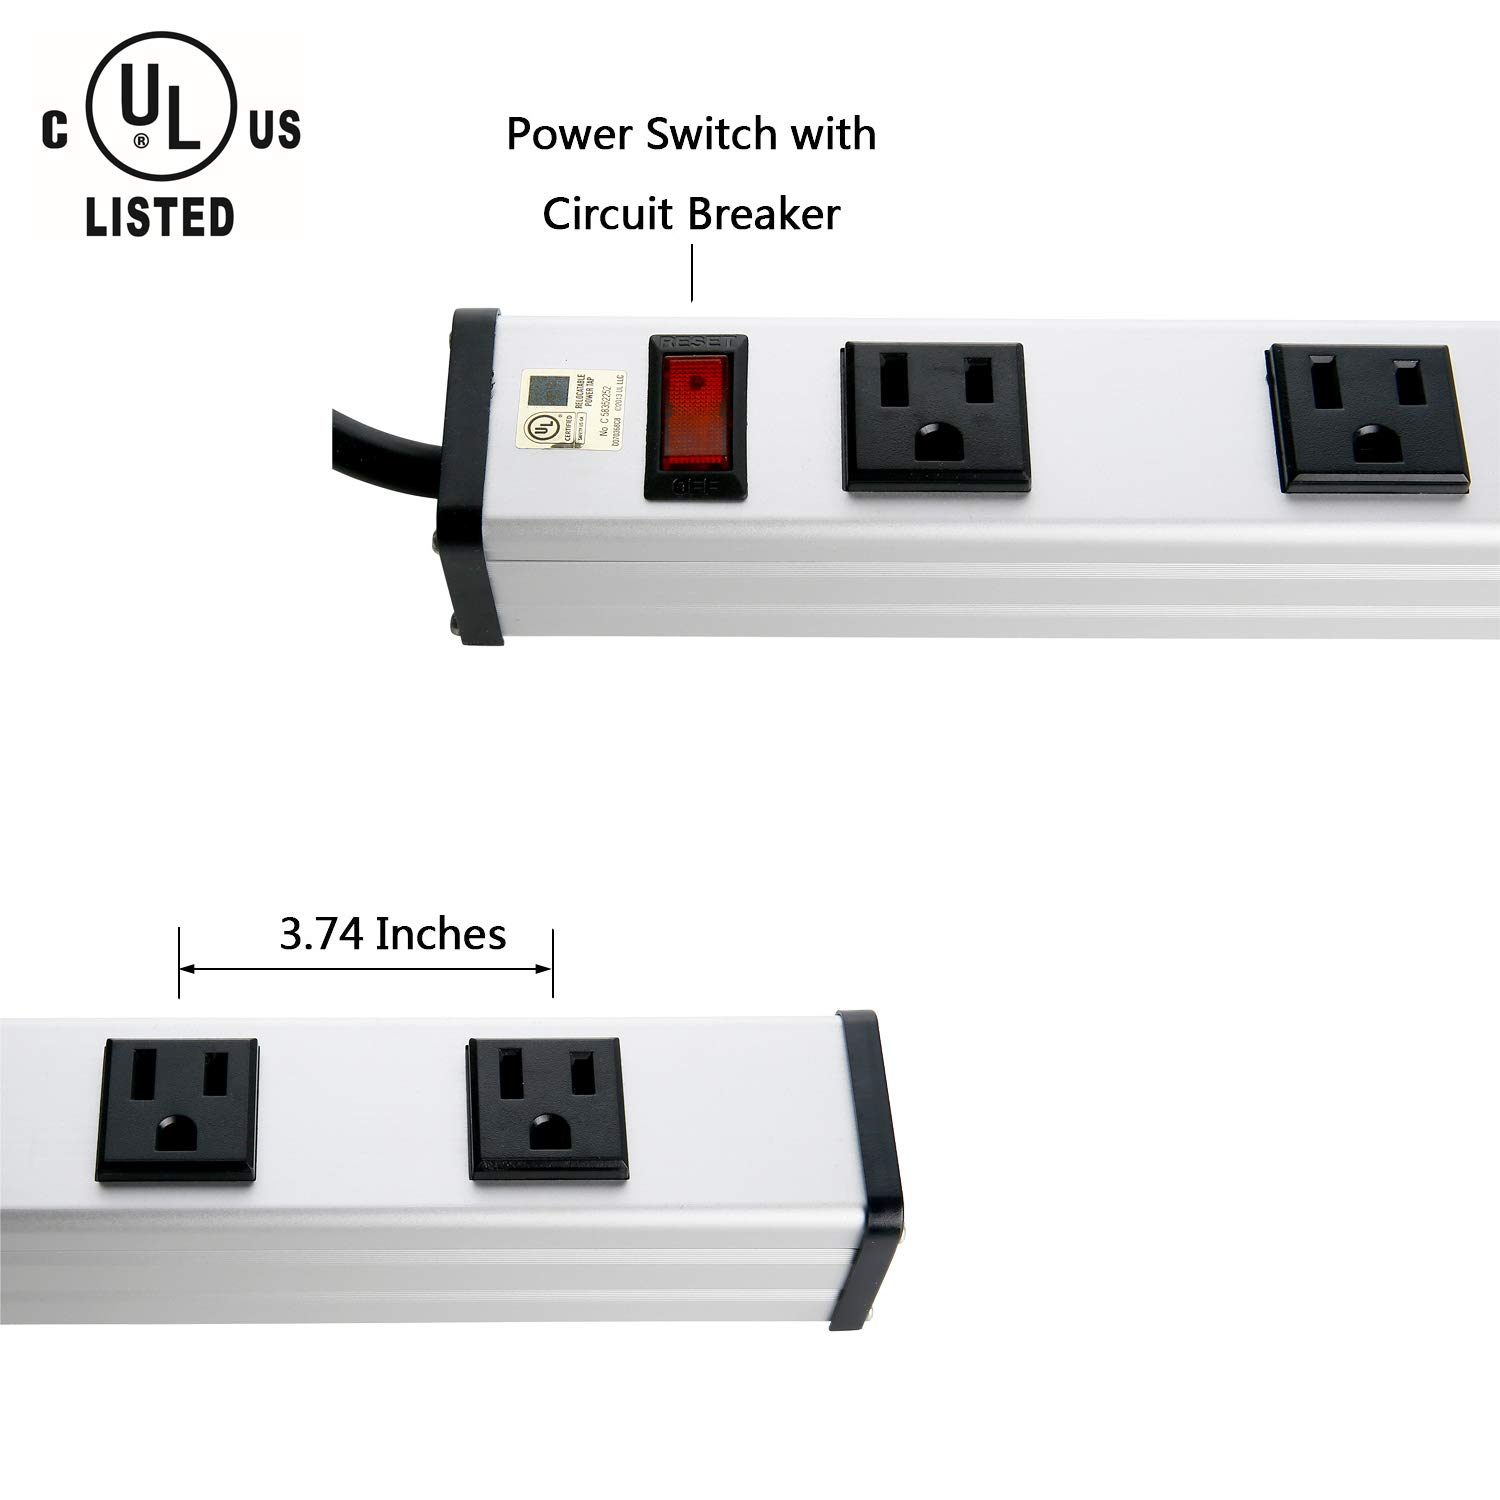 10 Outlet Plugs Heavy Duty Metal Power Strip, Surge Protector Aluminum Workshop Socket with 4FT Long Cord and Power Switch. 15A, 125V, 1875W